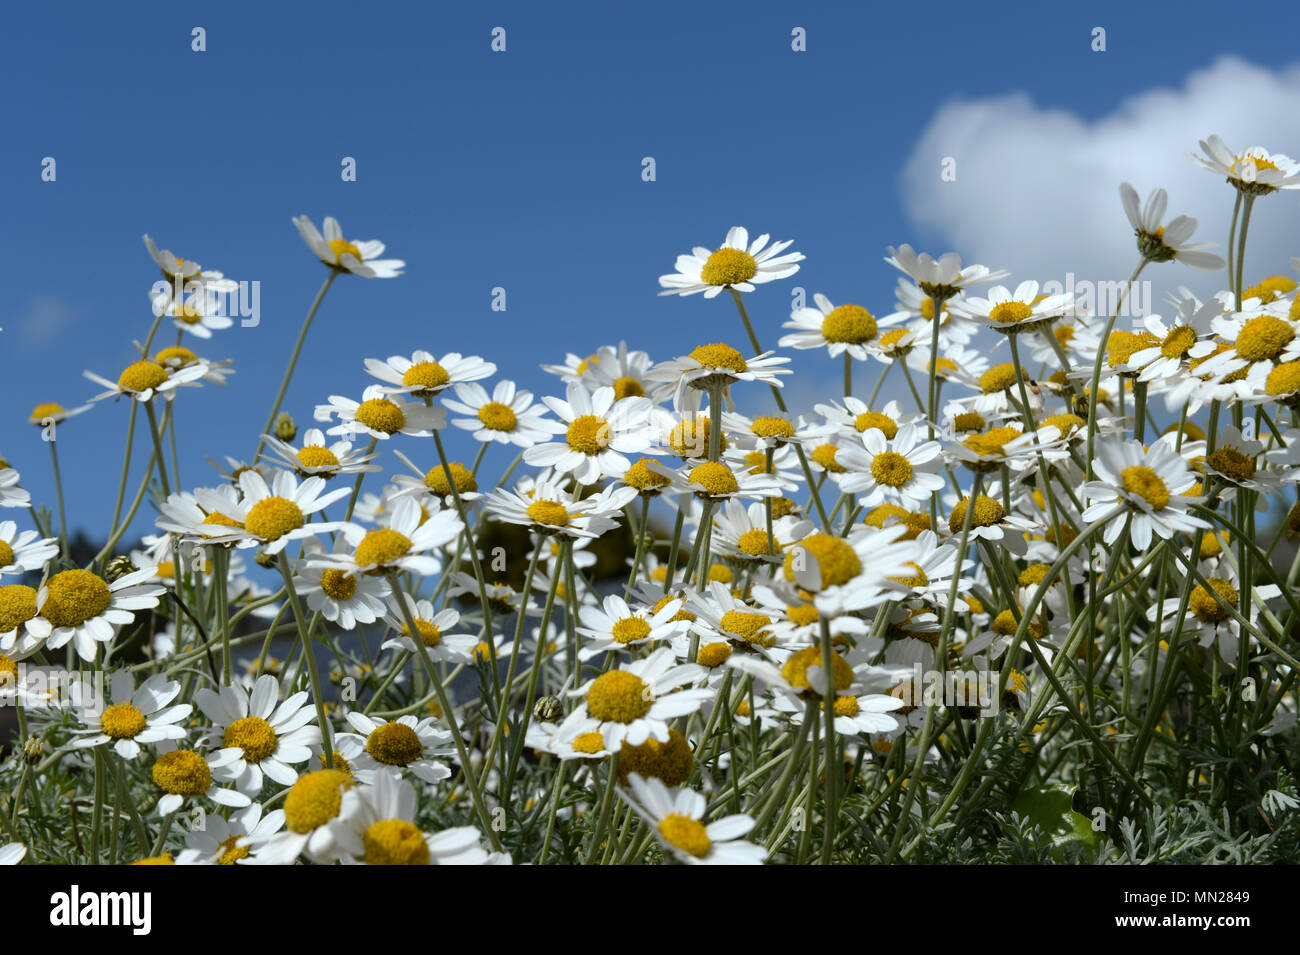 Chamomile flowers against a blue sky with puffy white clouds Stock Photo